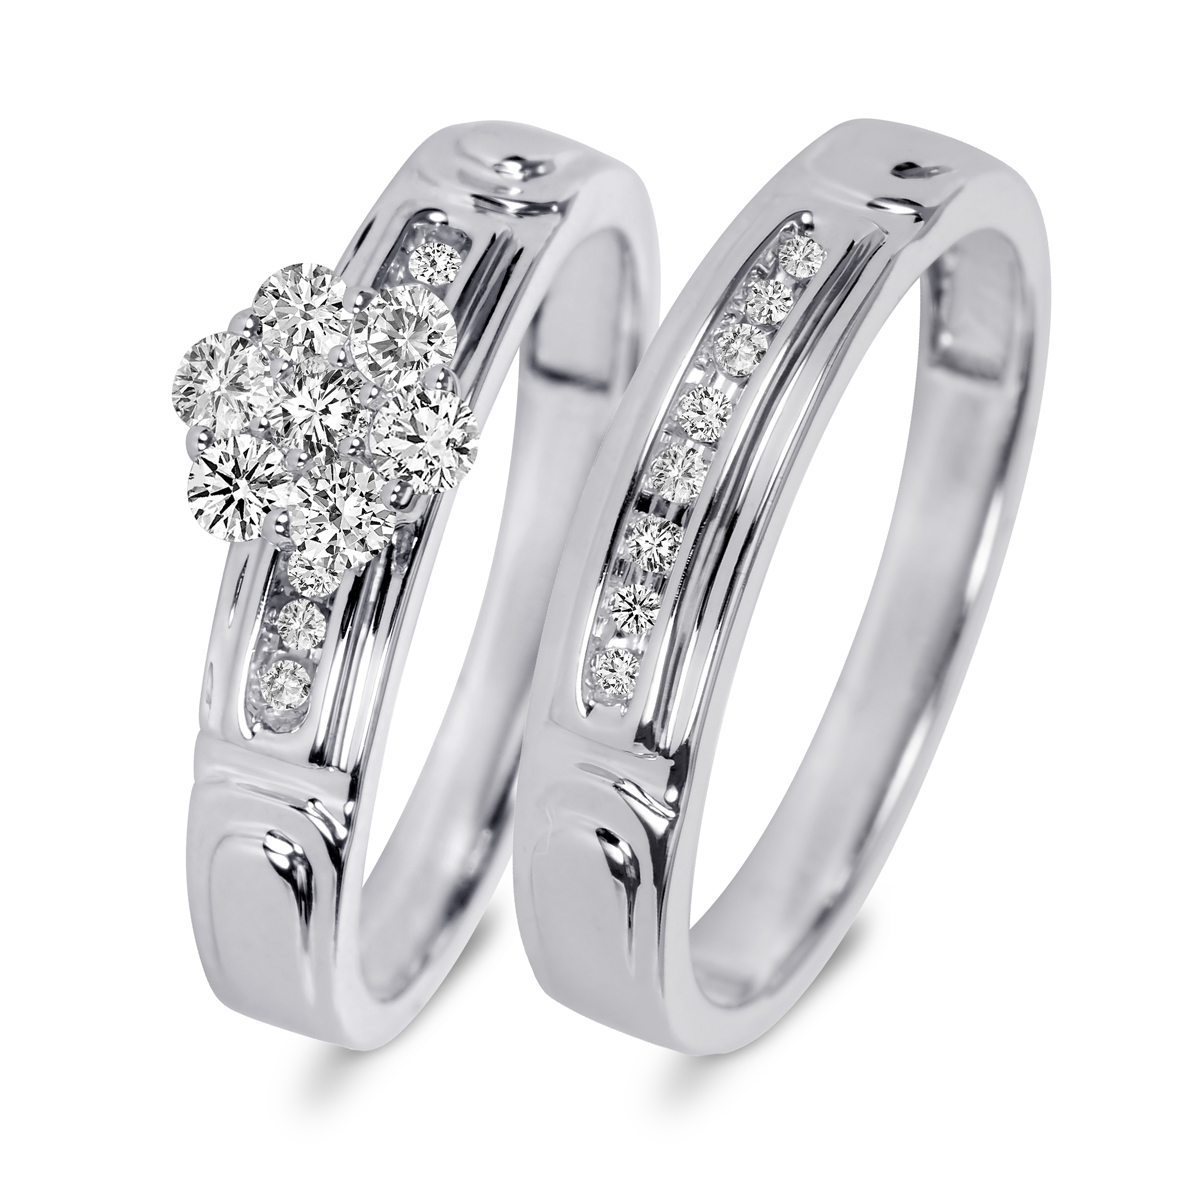 promotion engagement ring set promotion wedding rings set New Bridal wedding Rings set Engagement ring Women Classic design Vintage Jewelry Fashion Beautiful 2 pcs Ring for wedding